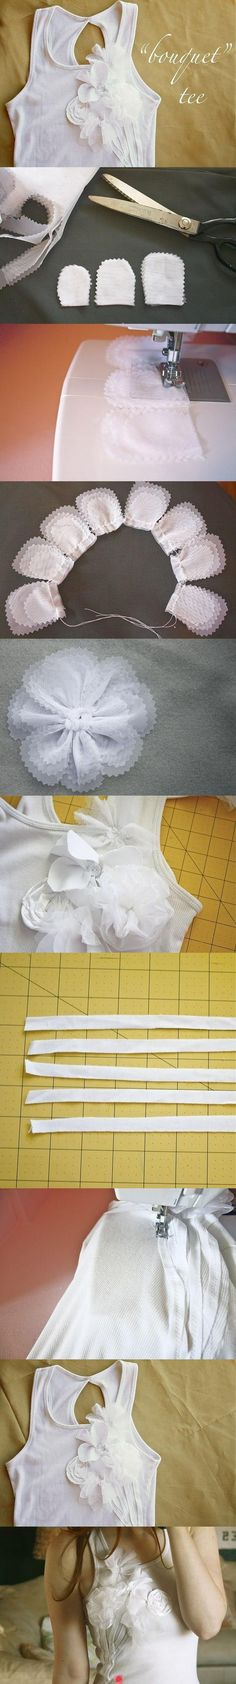 Fabric embellishments.